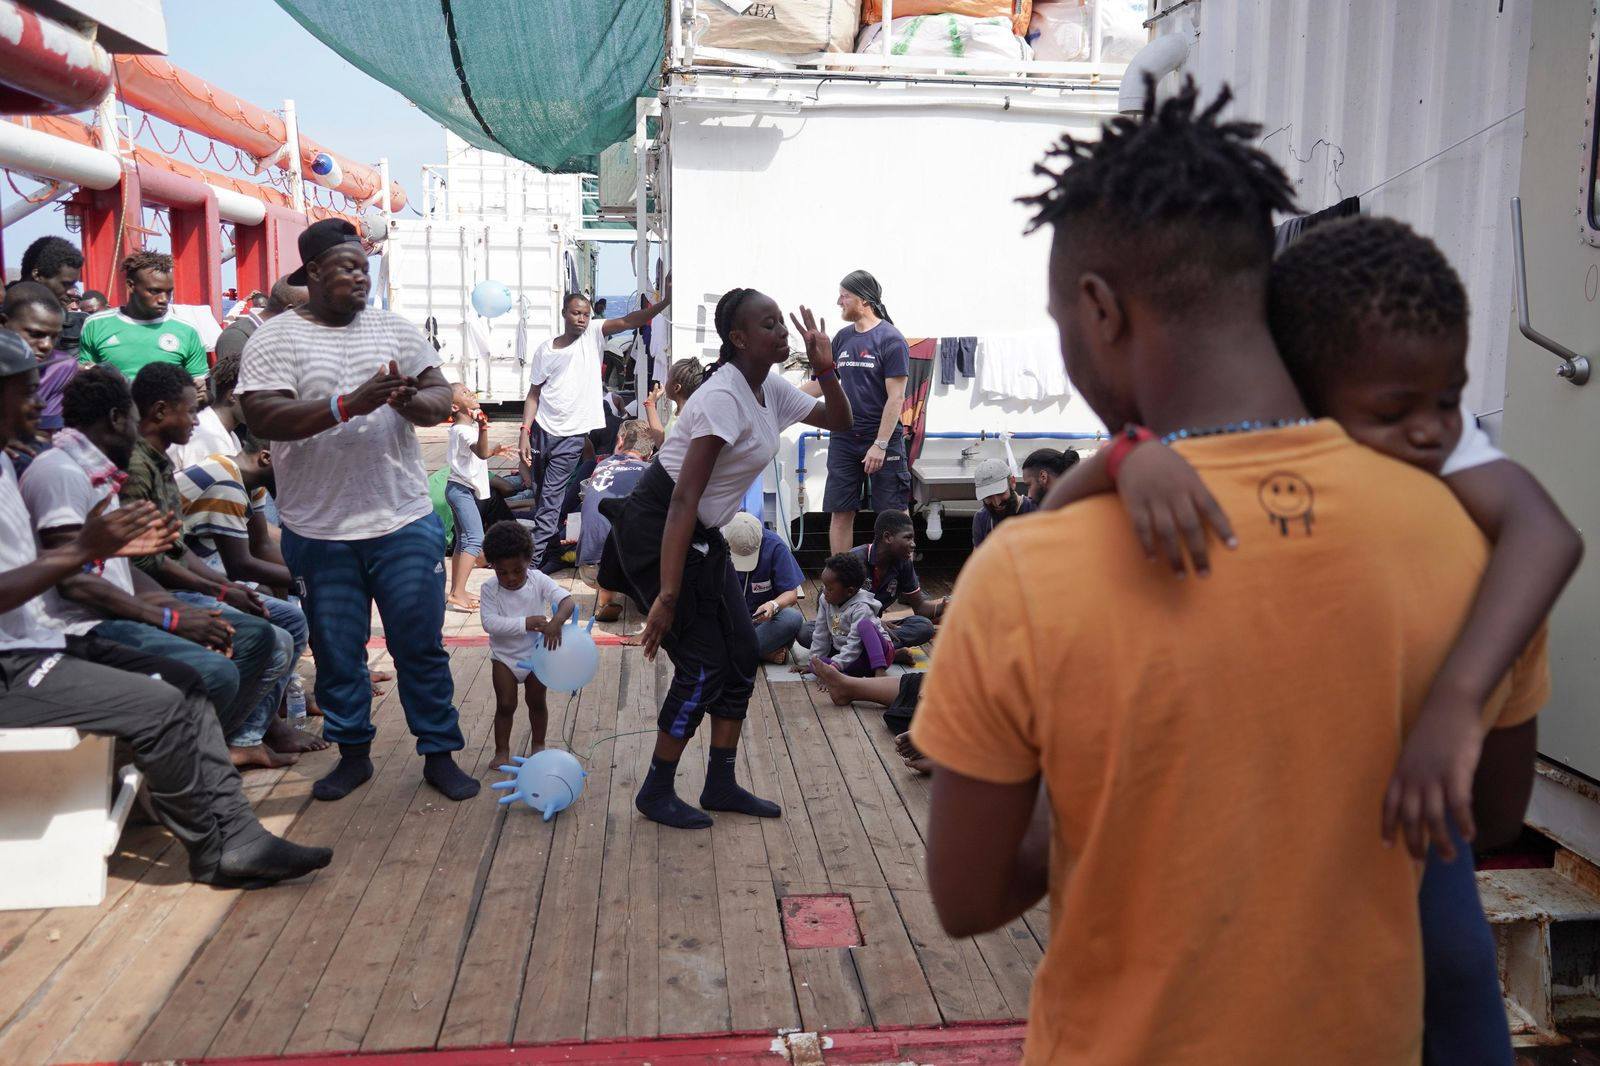 Rescued migrants dance and sing on the deck of the Ocean Viking as it sails in the Mediterranean Sea, Saturday, Sept. 21, 2019. The humanitarian ship operated by SOS Mediterranee and Doctors Without Borders is still waiting to be assigned a place of safety to disembark 182 people rescued after fleeing Libya. (AP Photo/Renata Brito)